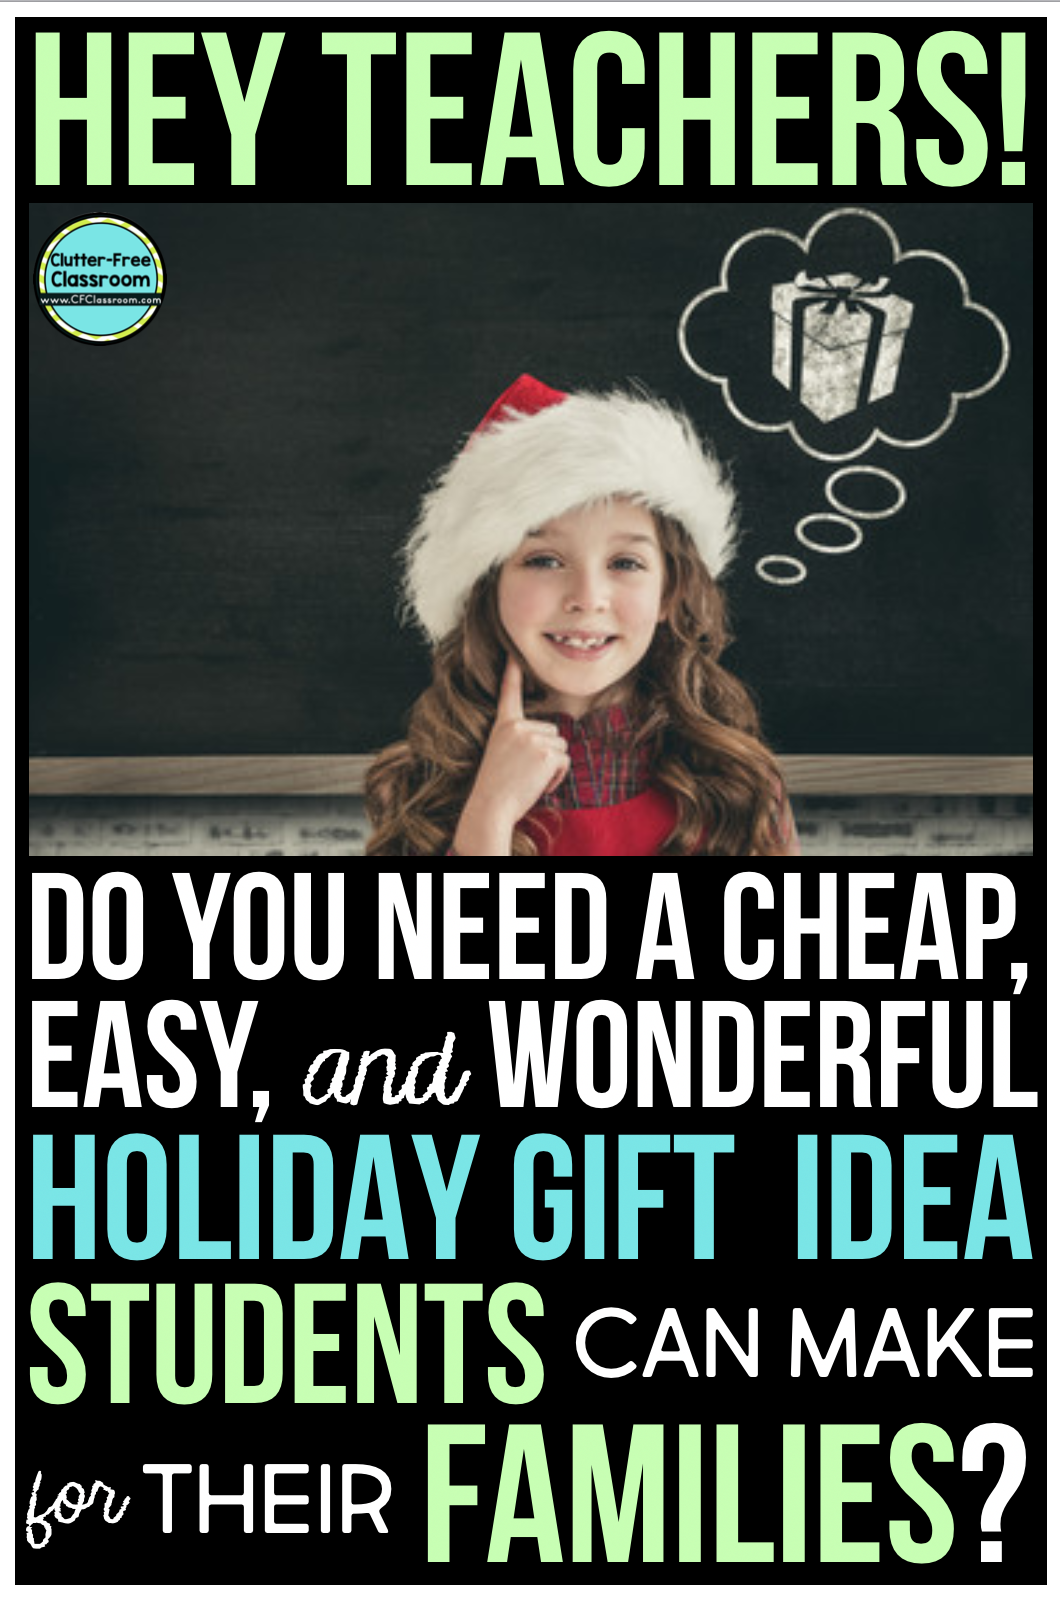 Are you looking for holiday gift ideas for students to make for their parents? Check out this fun and cheap present idea that can be used as a Christmas gift from students from the Clutter Free Classroom. #christmasgiftideas #holidaygiftideas #dinnerconversationstarters #giftsfromstudents #giftsforparents #clutterfreeclassroom #cfclassroom